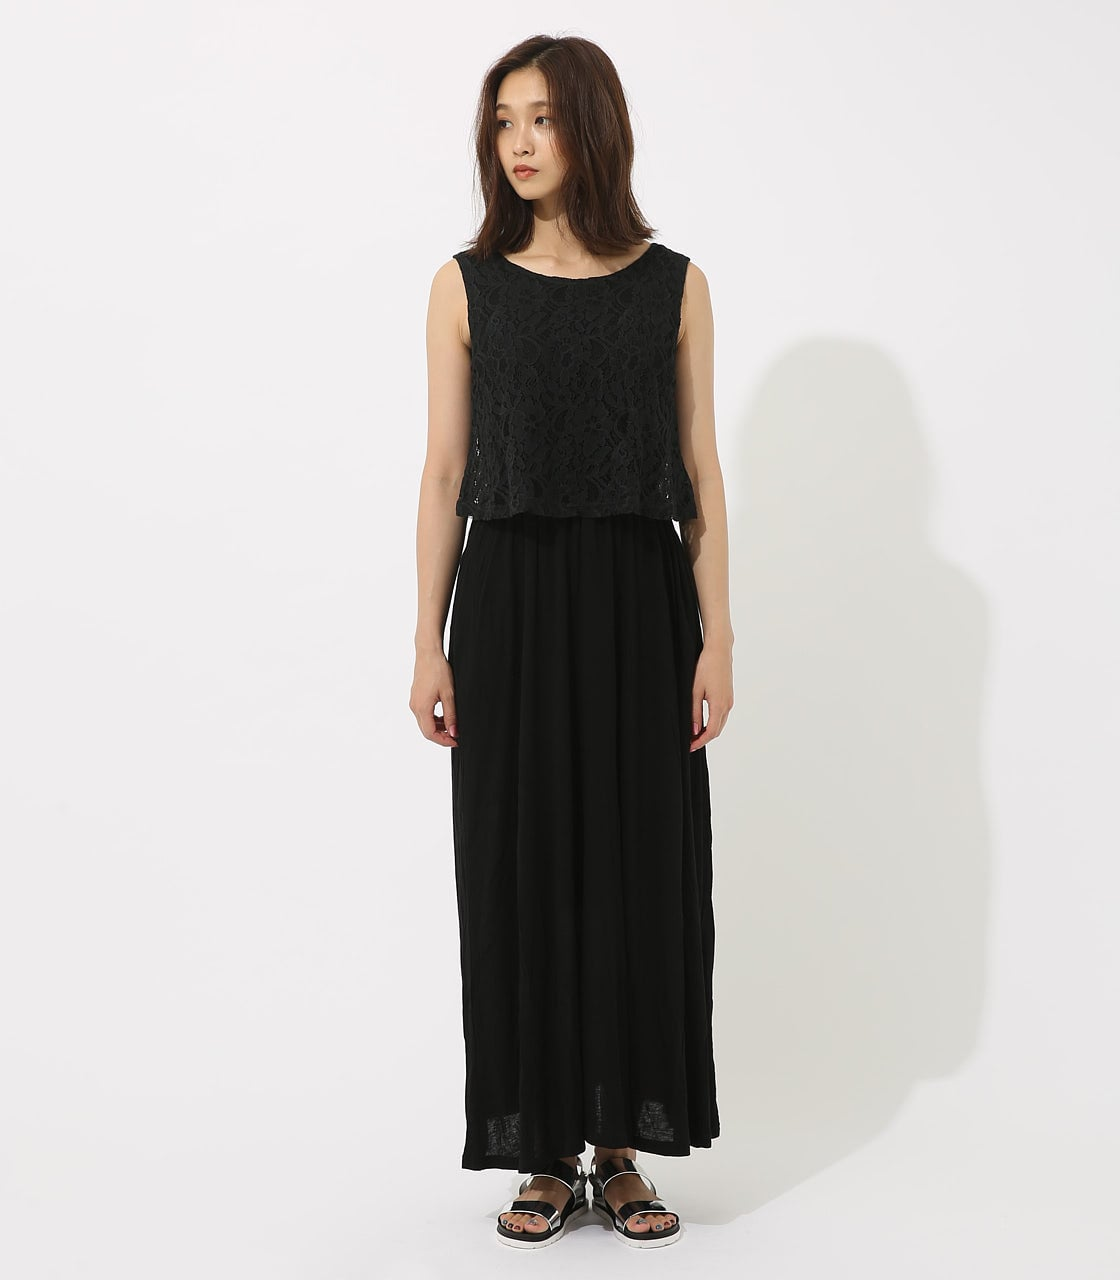 【AZUL BY MOUSSY】レースドッキングワンピース 詳細画像 BLK 5